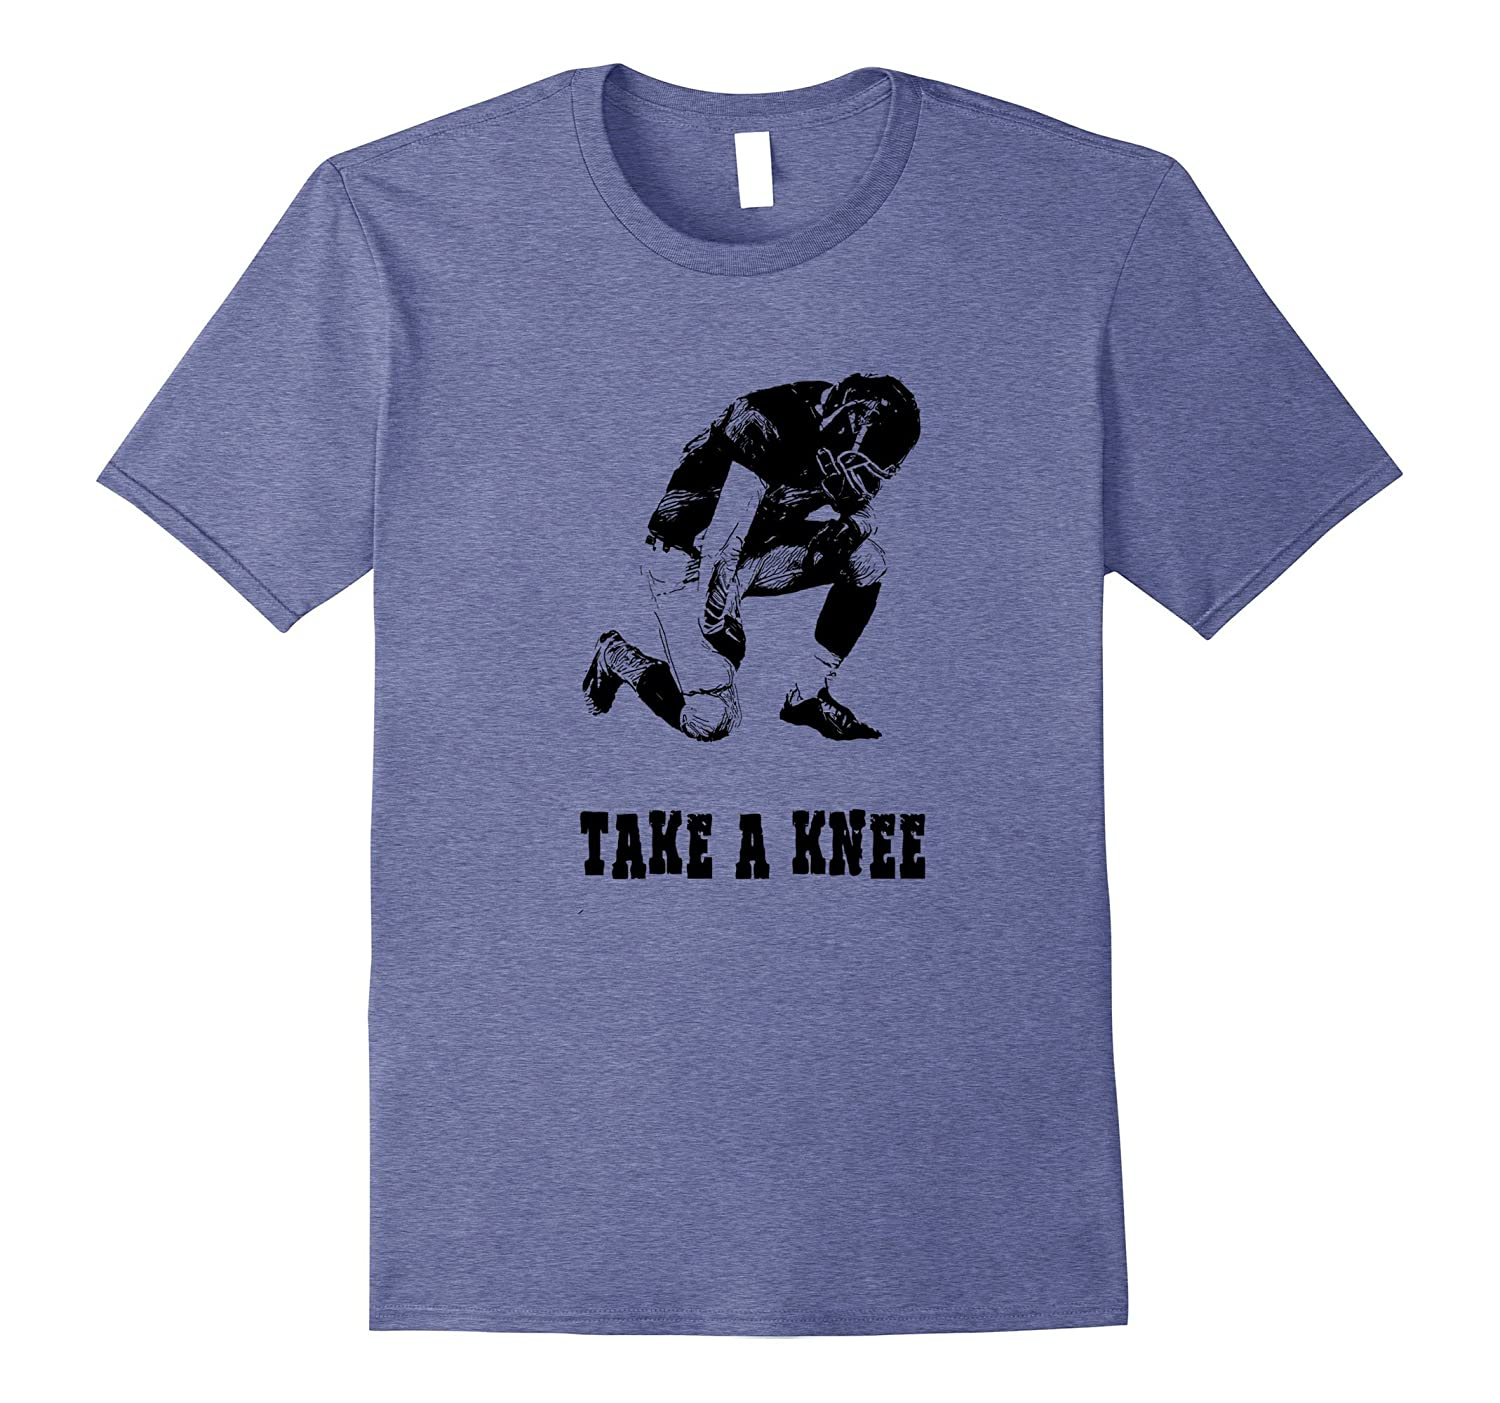 Football players opinion kneel in civil disobedience t shirt-FL